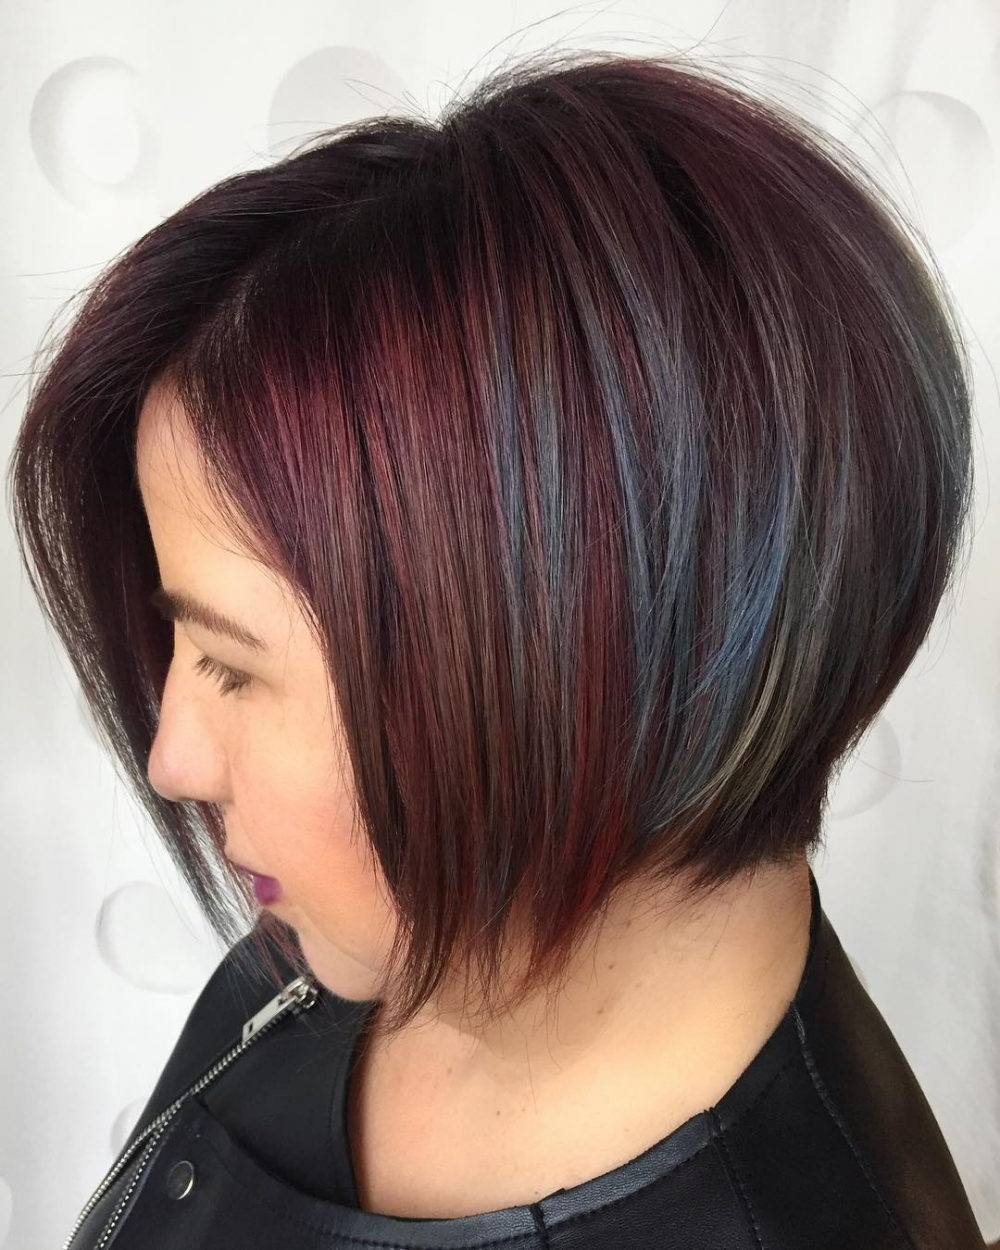 34 Greatest Short Haircuts And Hairstyles For Thick Hair For 2018 With Regard To Smooth Bob Hairstyles For Thick Hair (View 10 of 20)